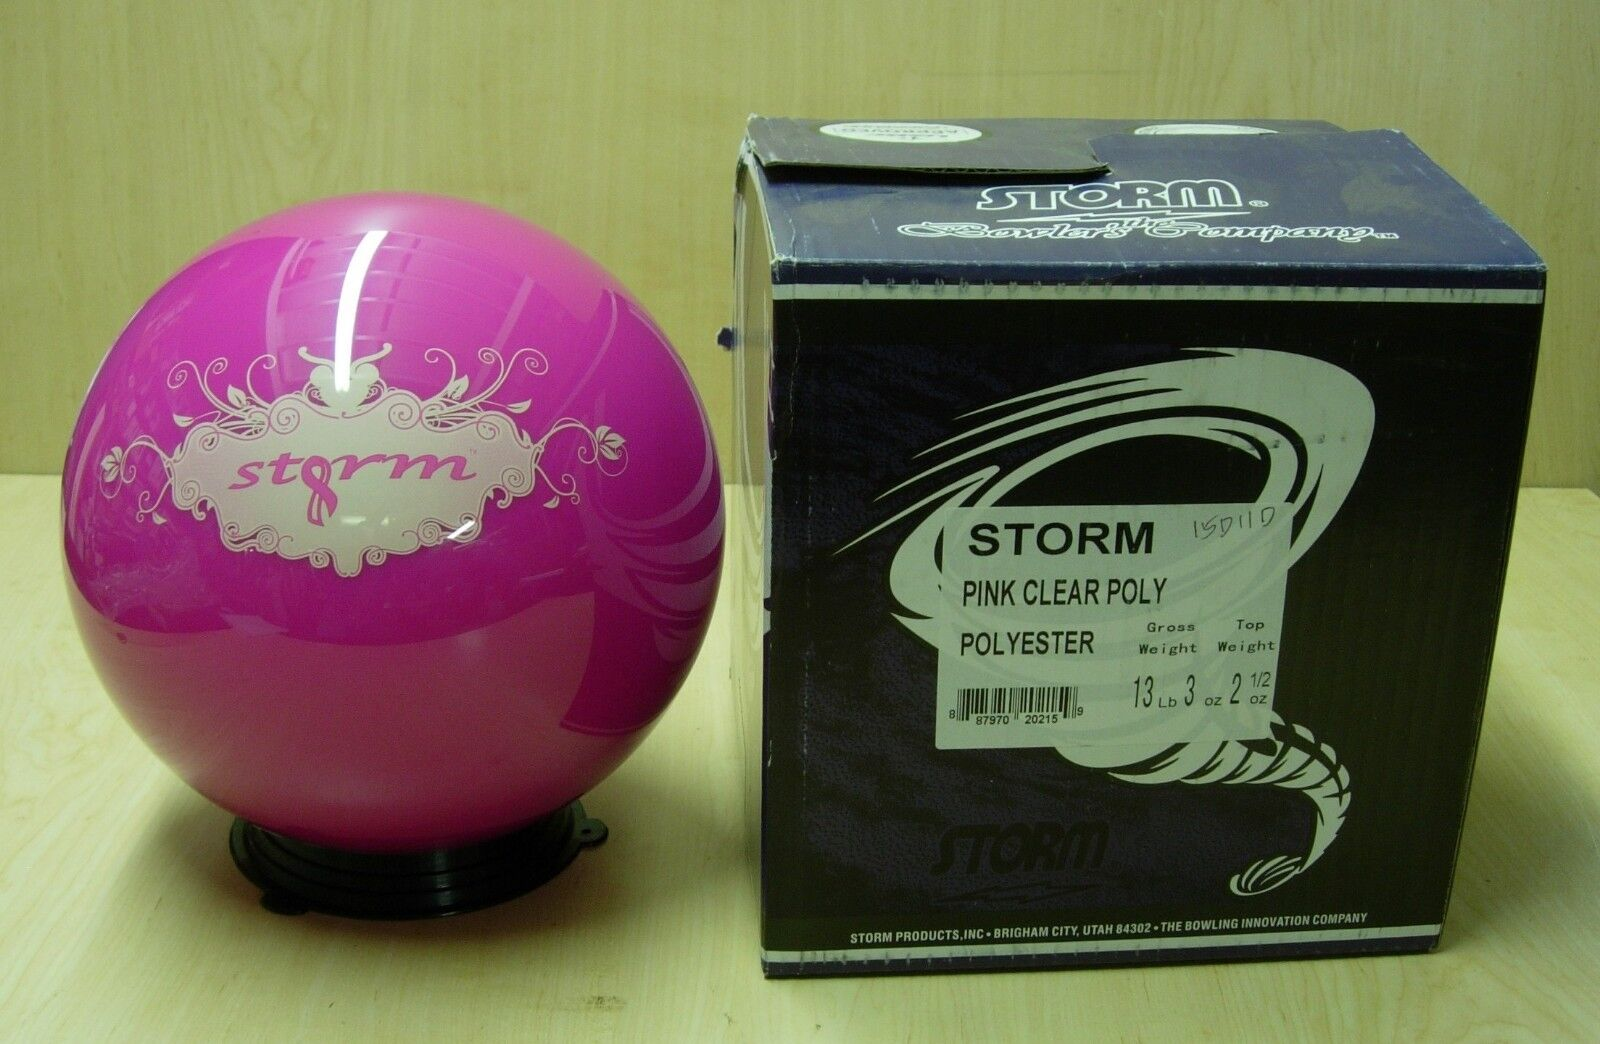 13 3oz Tw 2.5 2014 Storm Pink Clear Poly Bowling Ball